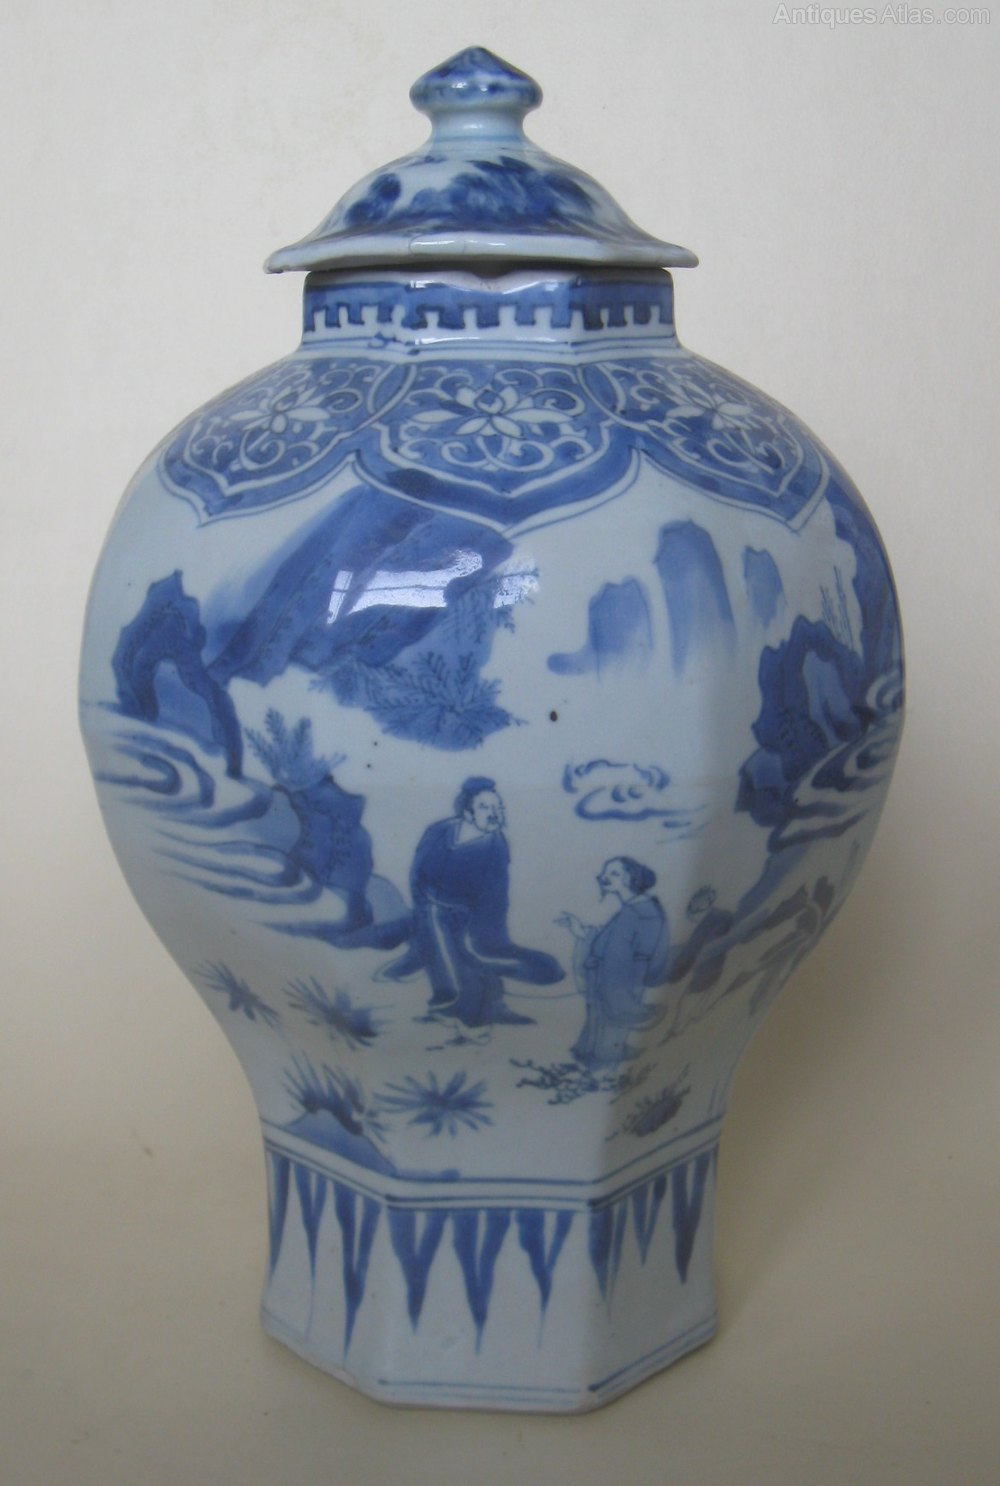 Antiques atlas large chinese transitional period vase large chinese transitional period vase reviewsmspy